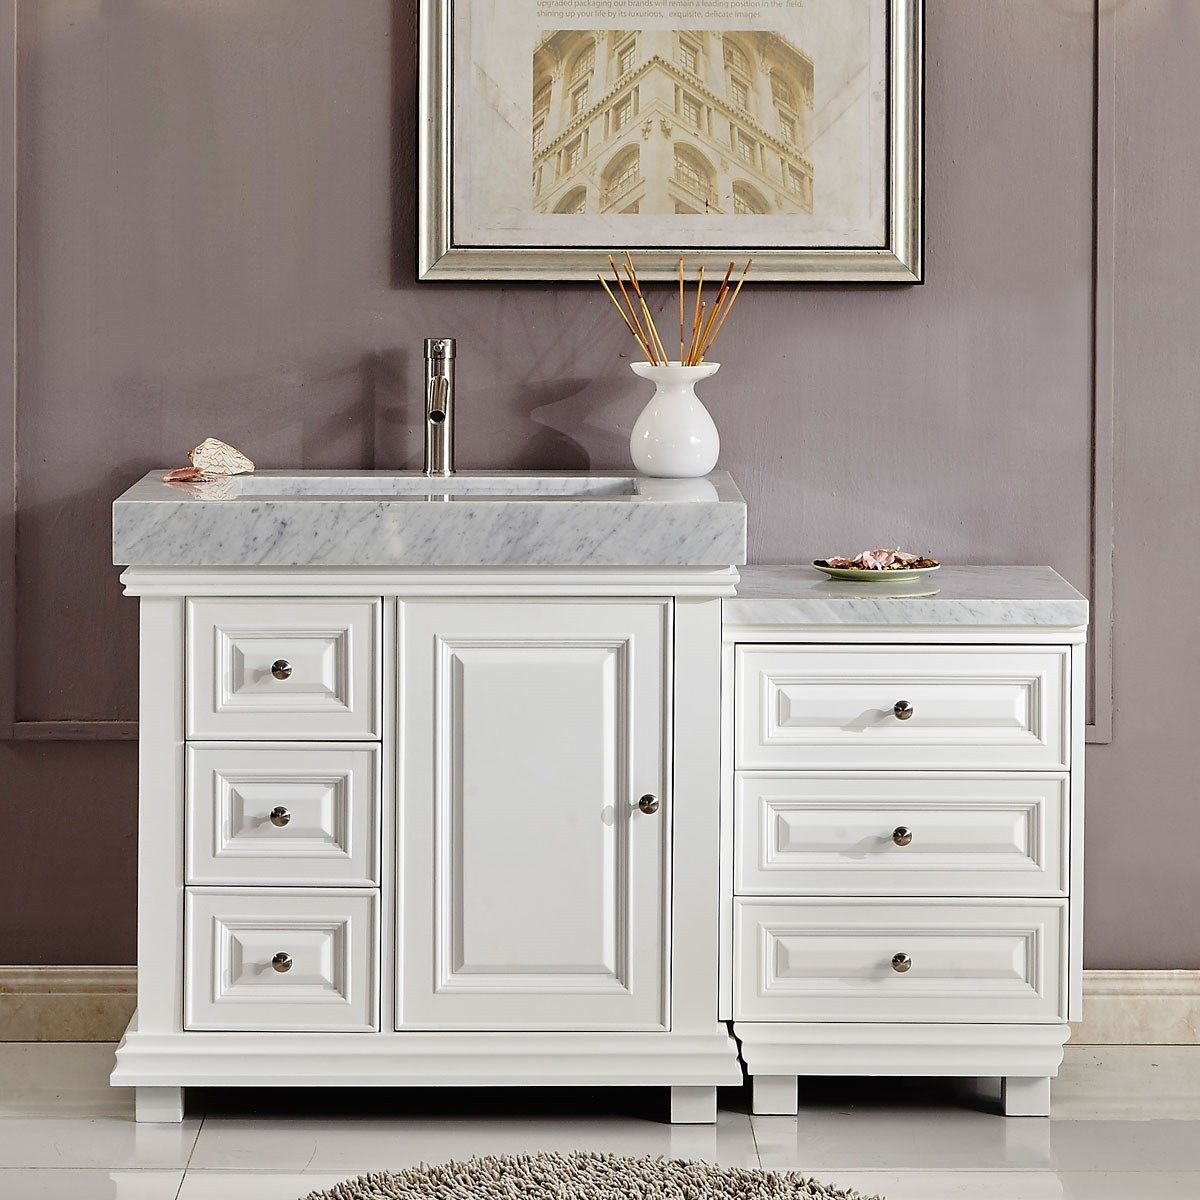 56 Bathroom Vanity 56 Inch Bathroom Vanity White Finish Integrated Carrara Marble Sink